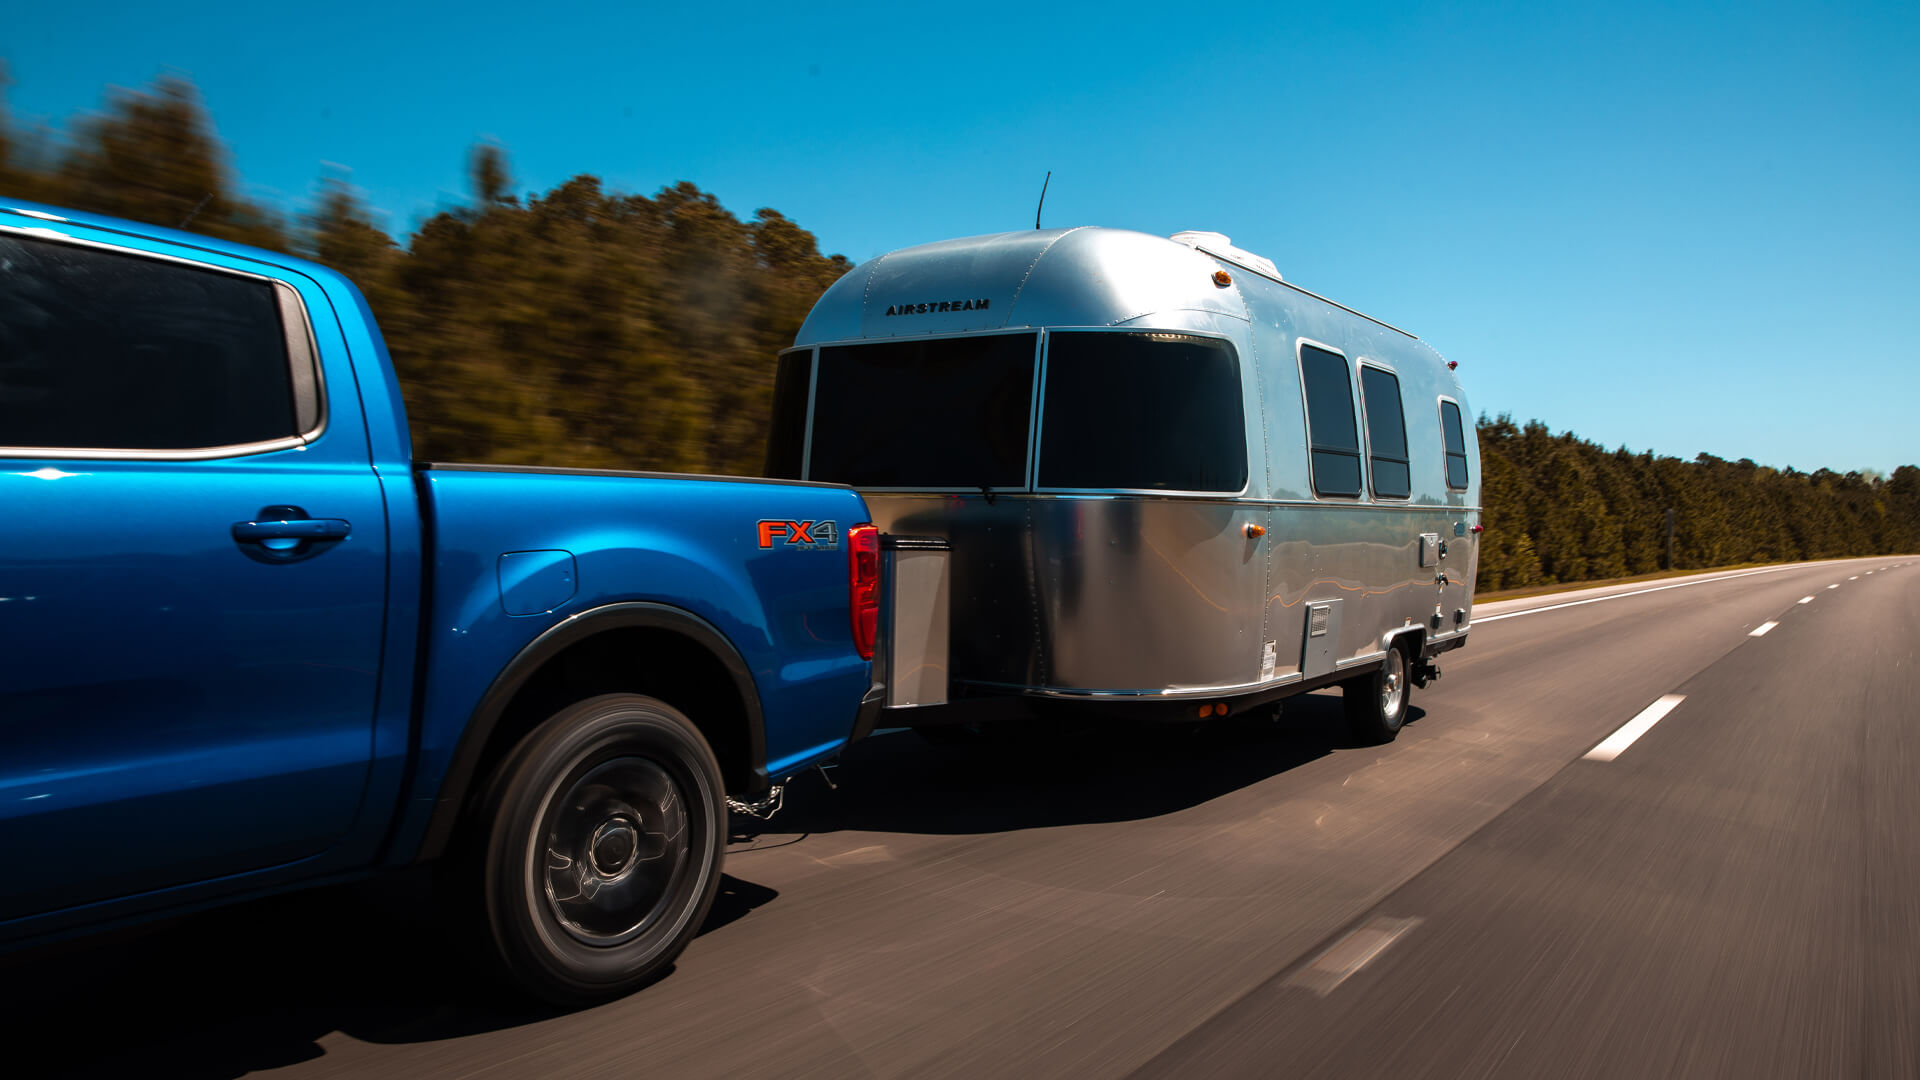 What is the Advantage of an Airstream Trailer